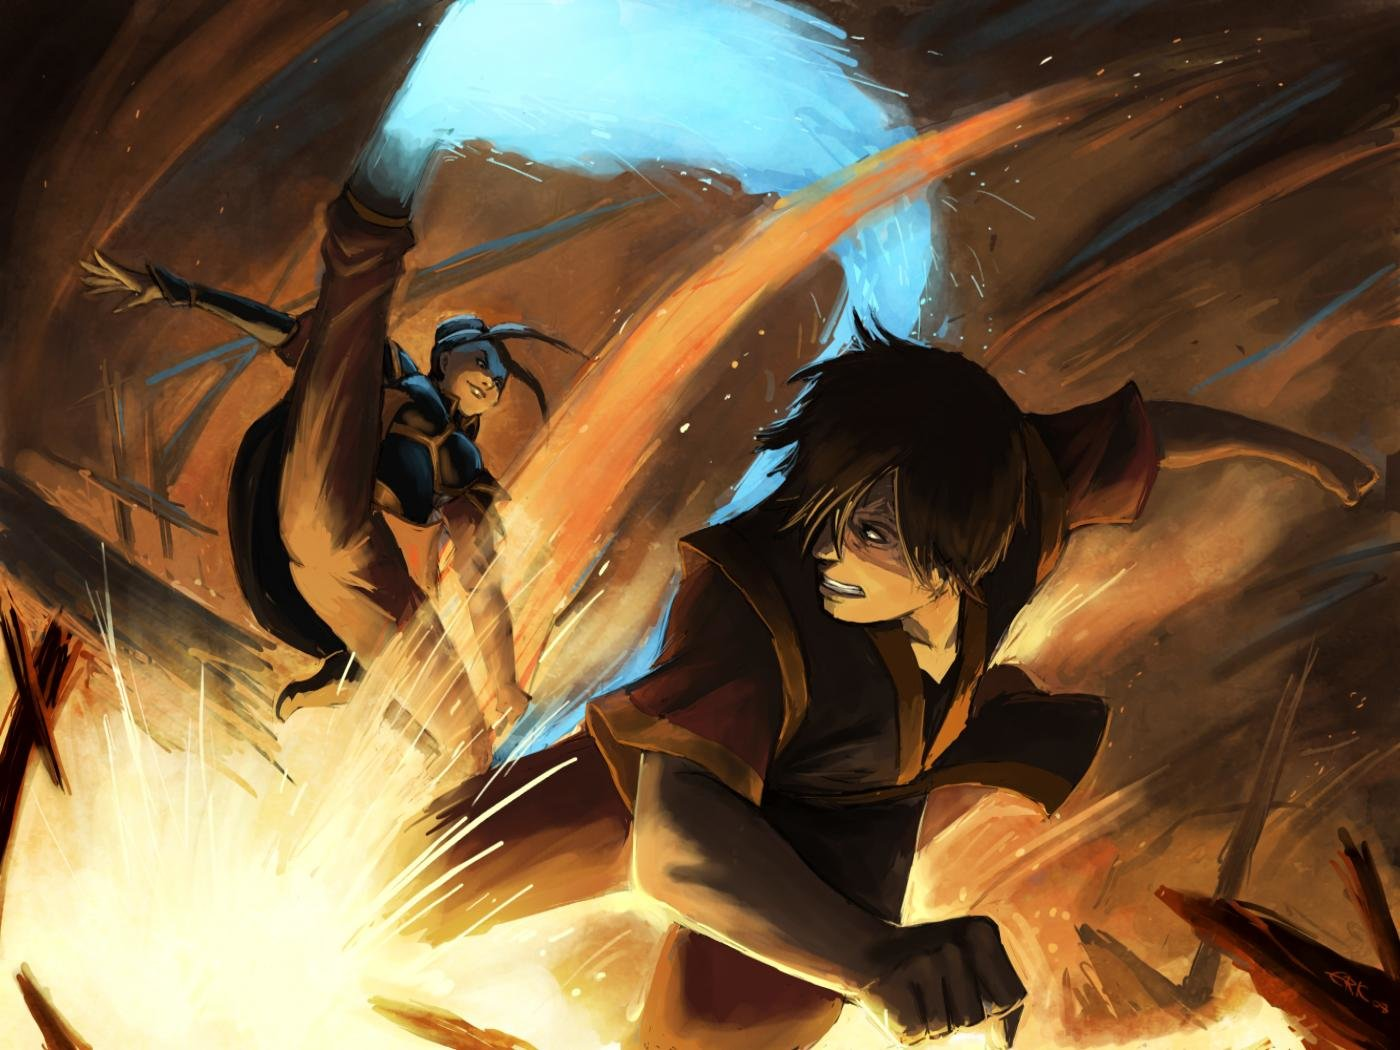 Best Avatar The Last Airbender Wallpaper ID226699 For High Resolution Hd 1400x1050 Computer